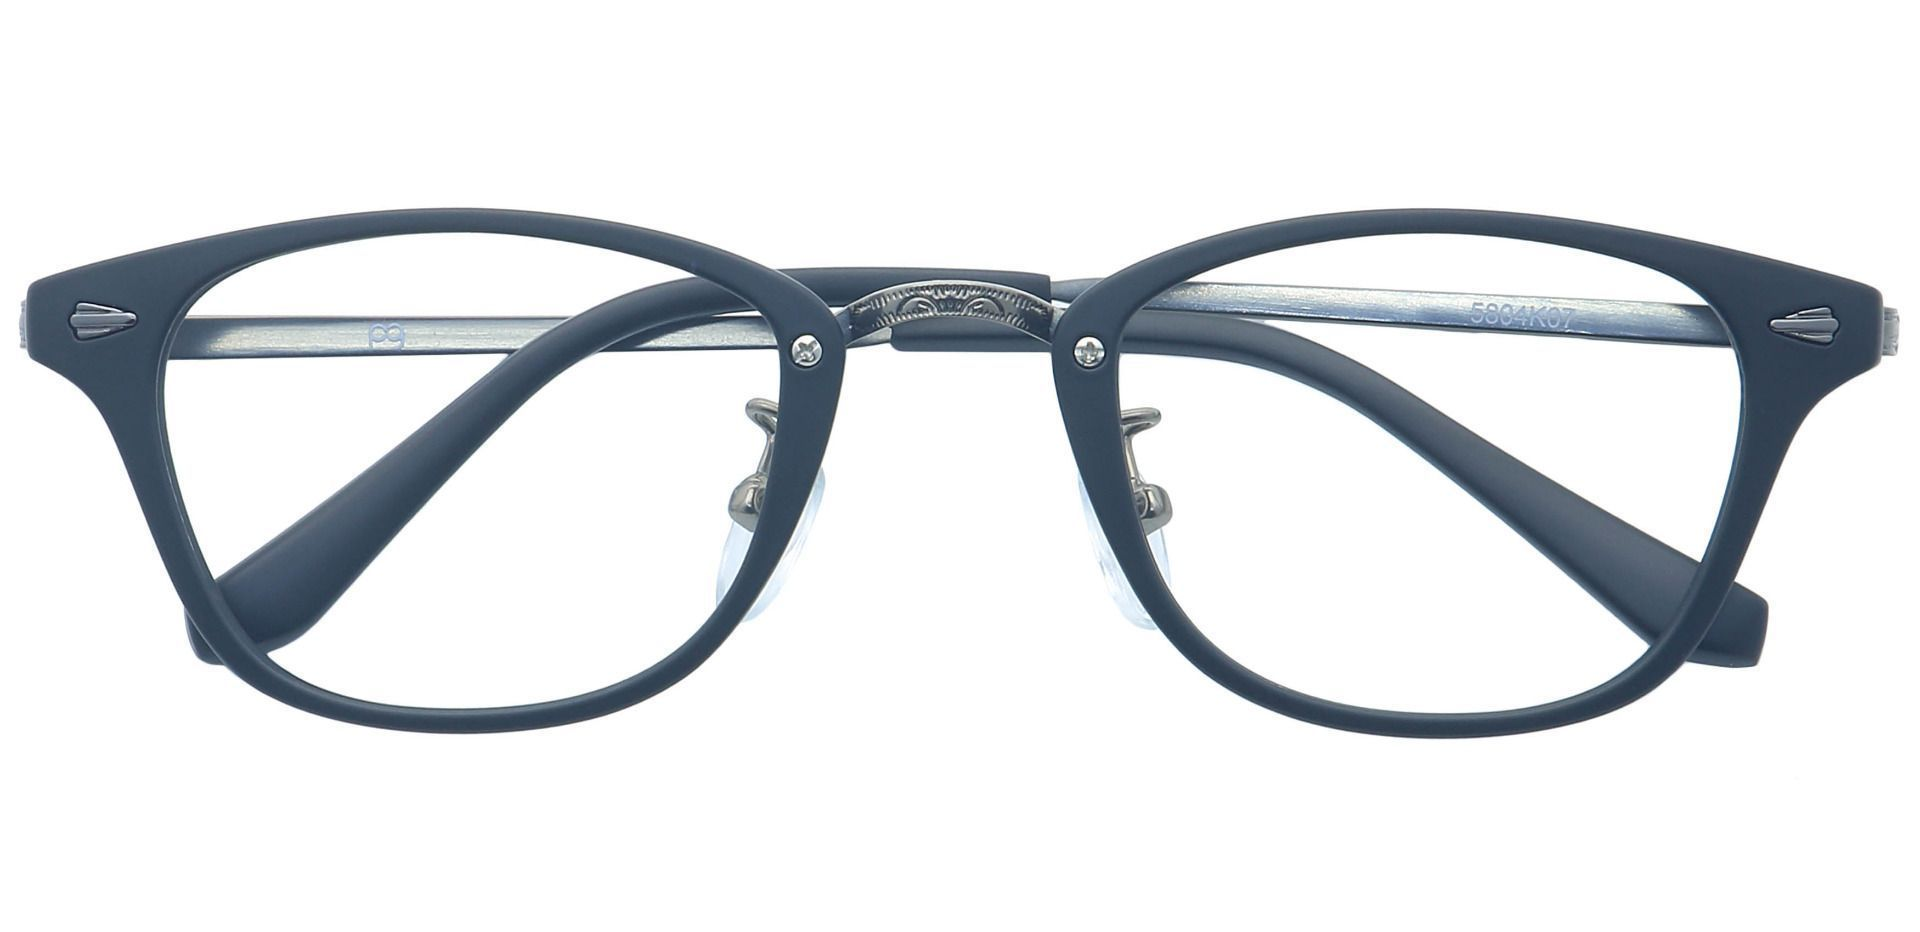 Sabato Round Prescription Glasses - Black